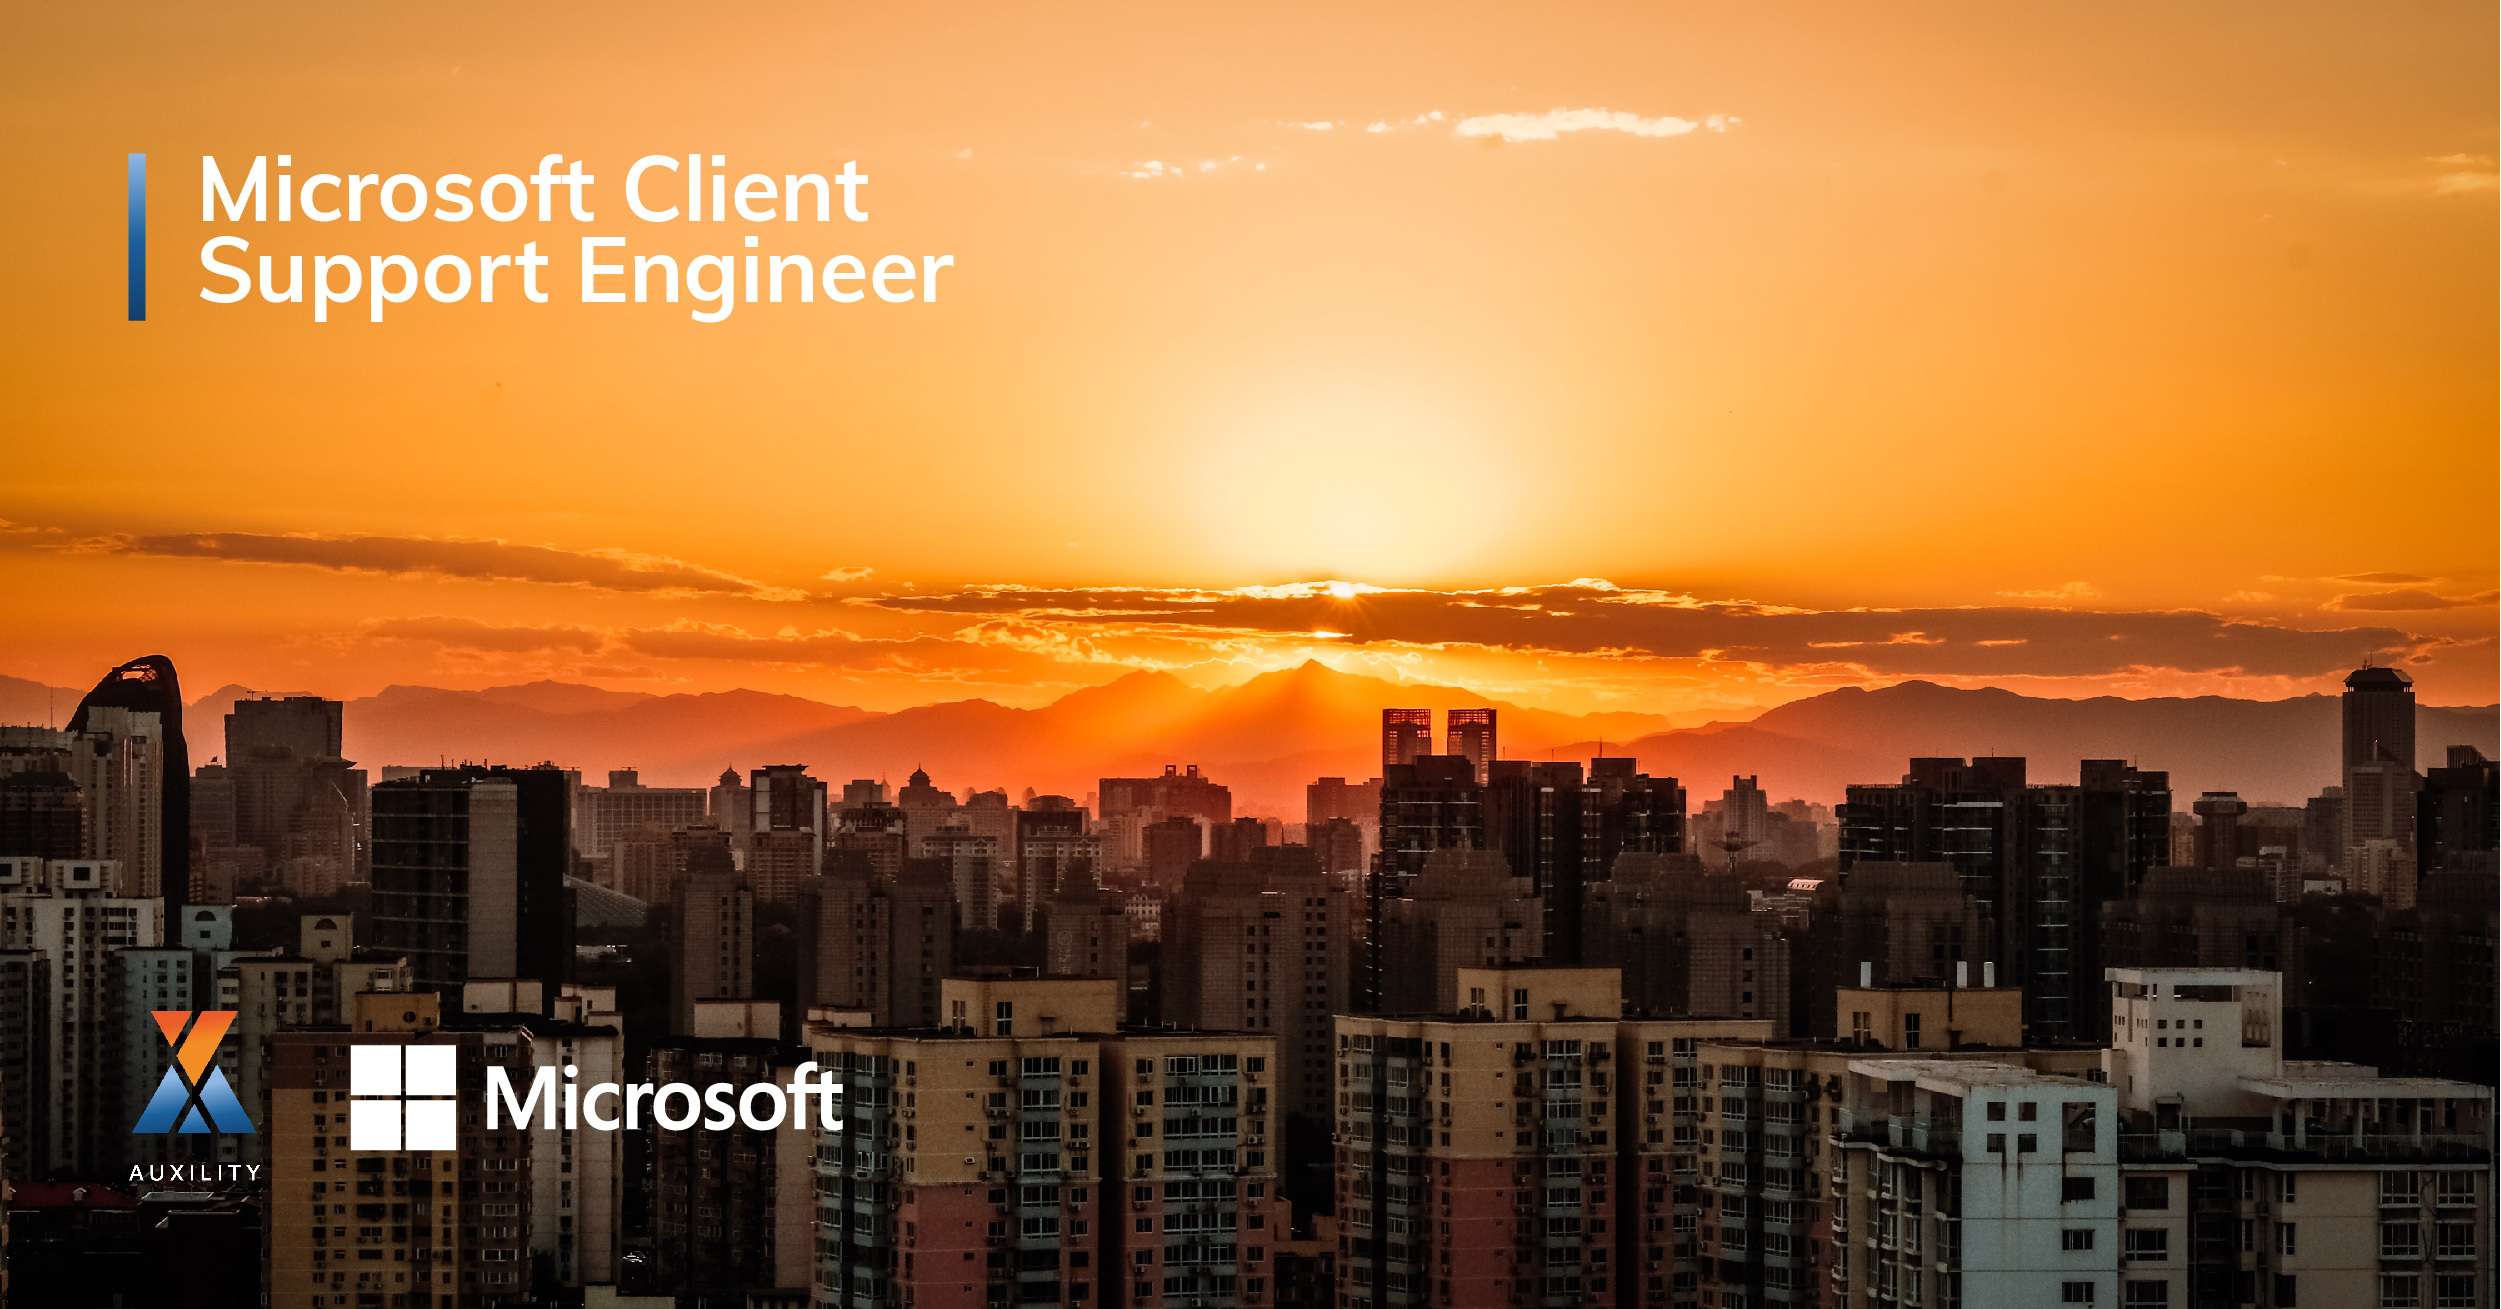 Microsoft Client Support Engineer